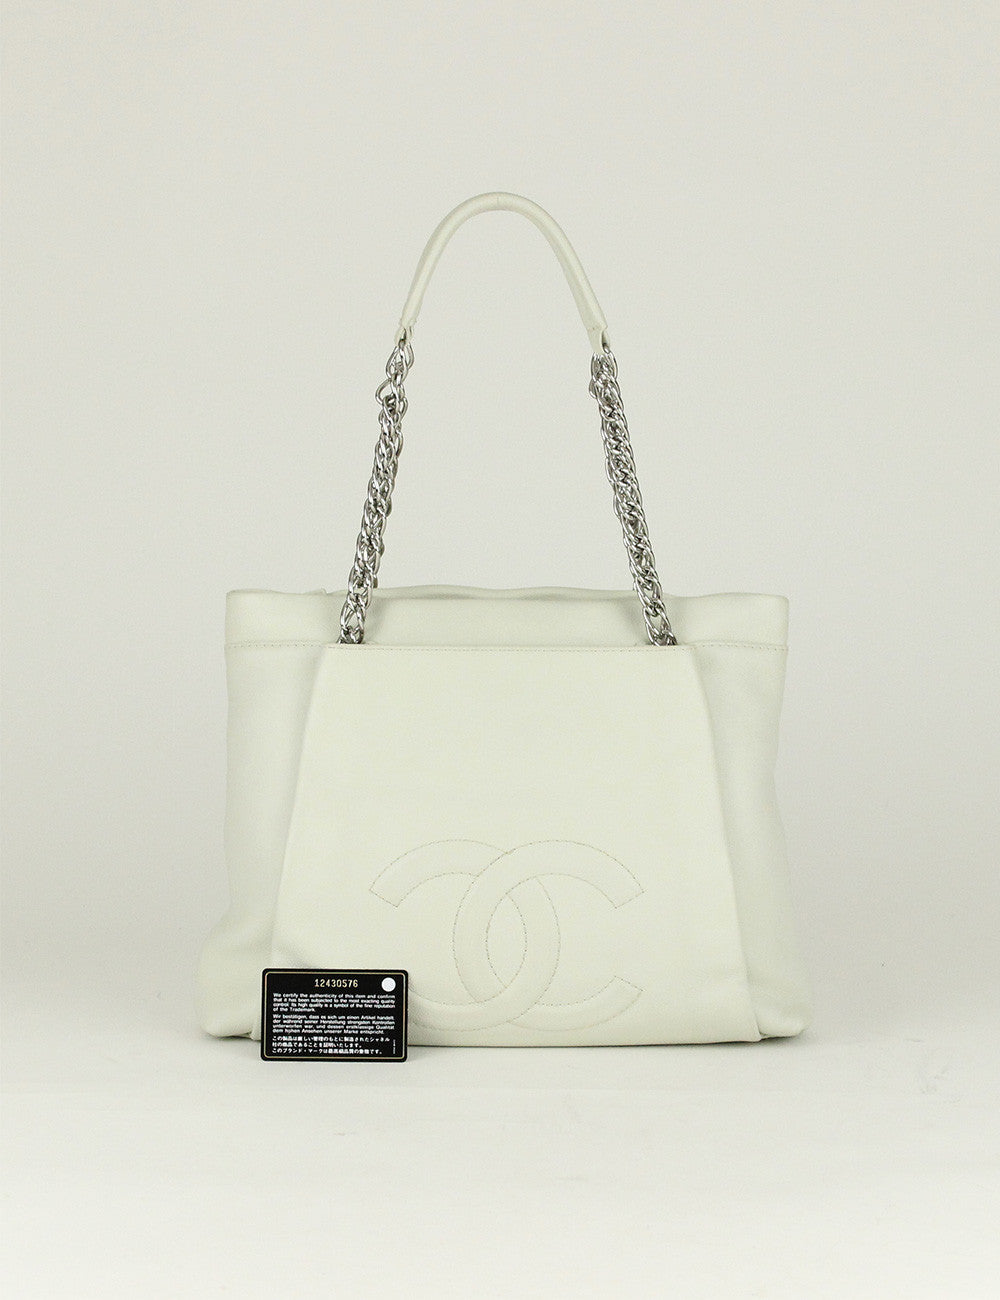 Chanel <br> CC Logo Shopping Tote Bag